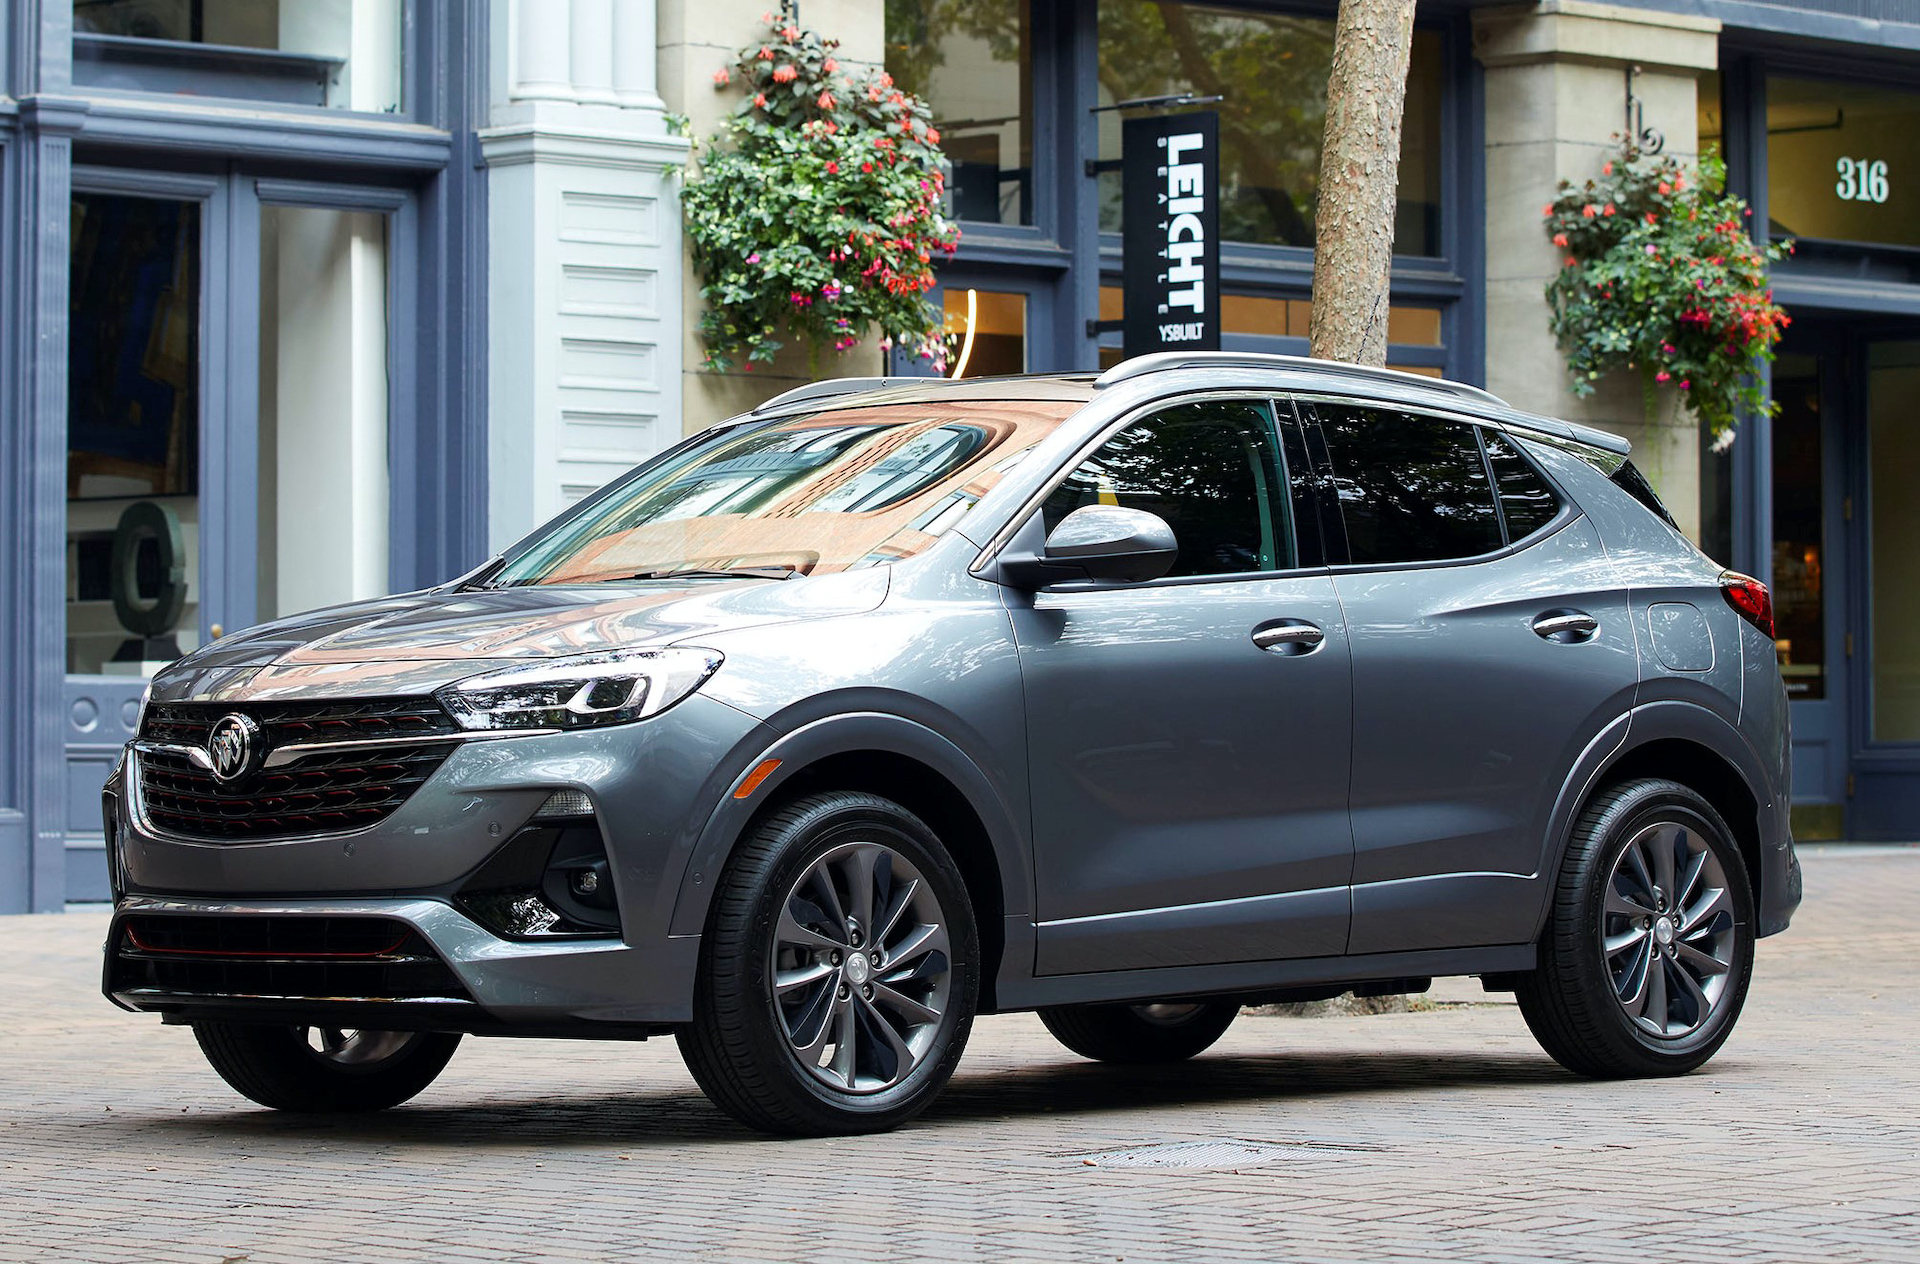 2021 Buick Encore Review, Ratings, Specs, Prices, And Photos New 2021 Buick Encore Horsepower, Interior Colors, Infotainment System